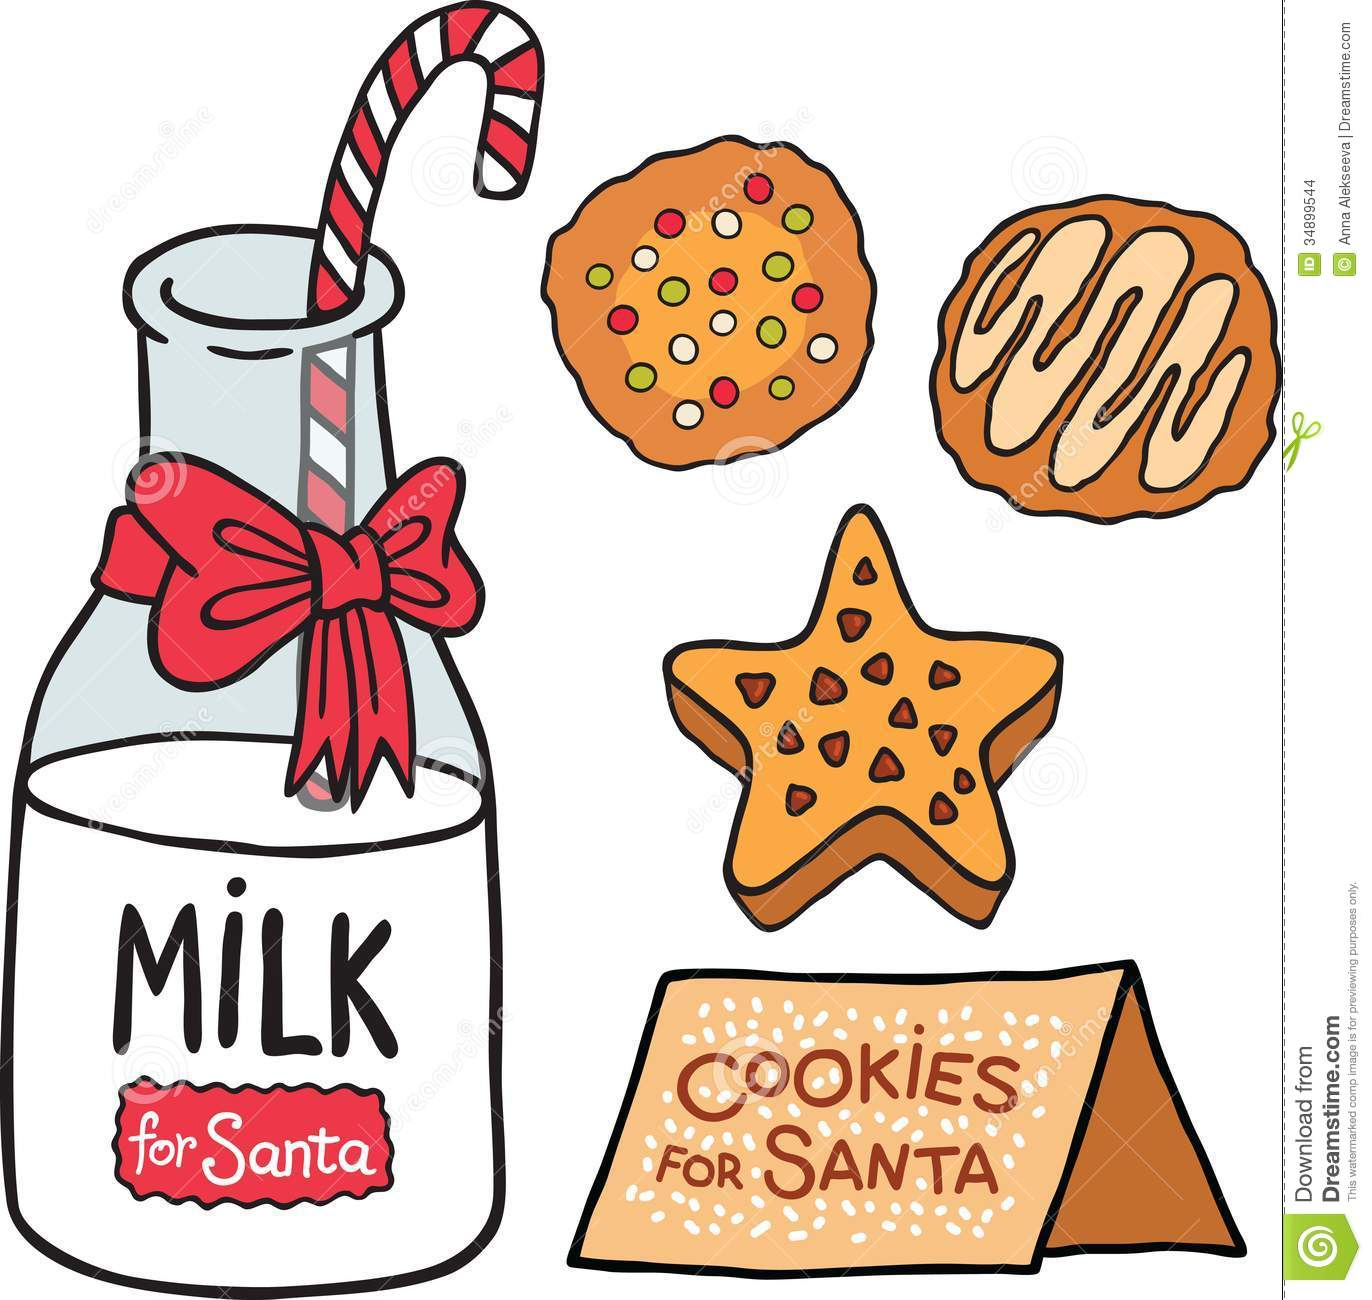 Santa clipart milk and cookie #3